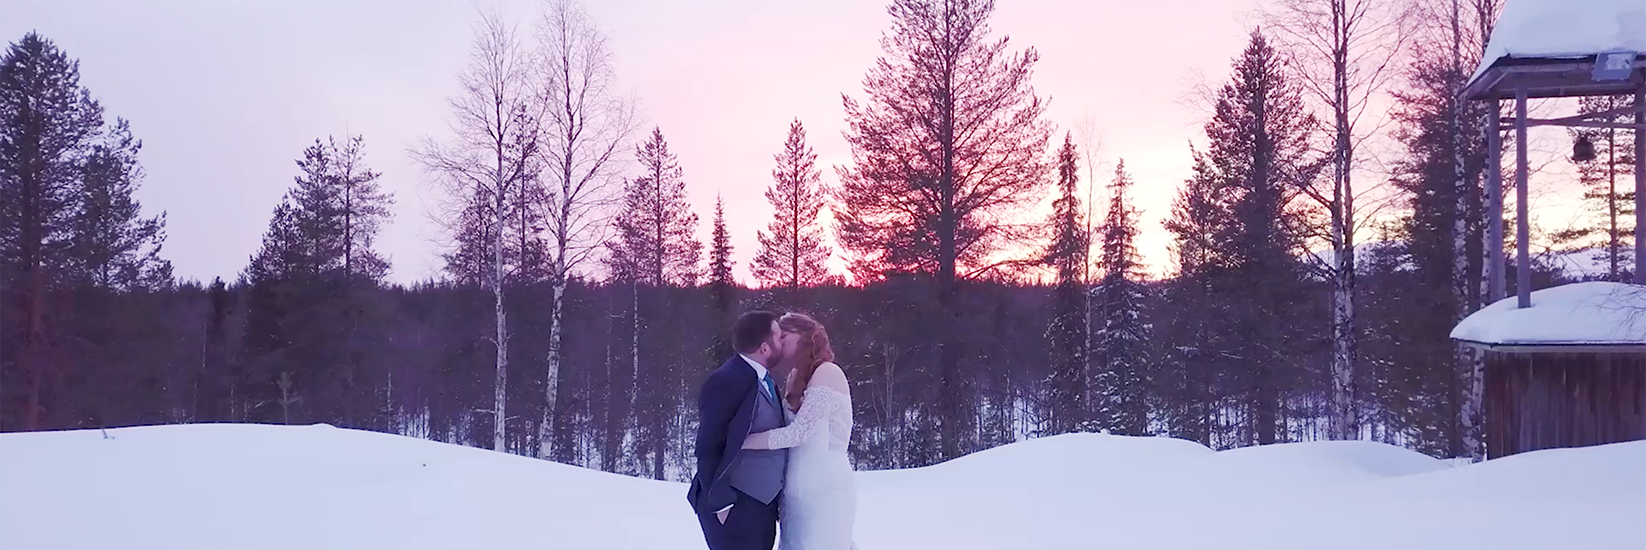 Game of Thrones Wedding at The Snow Village Finland